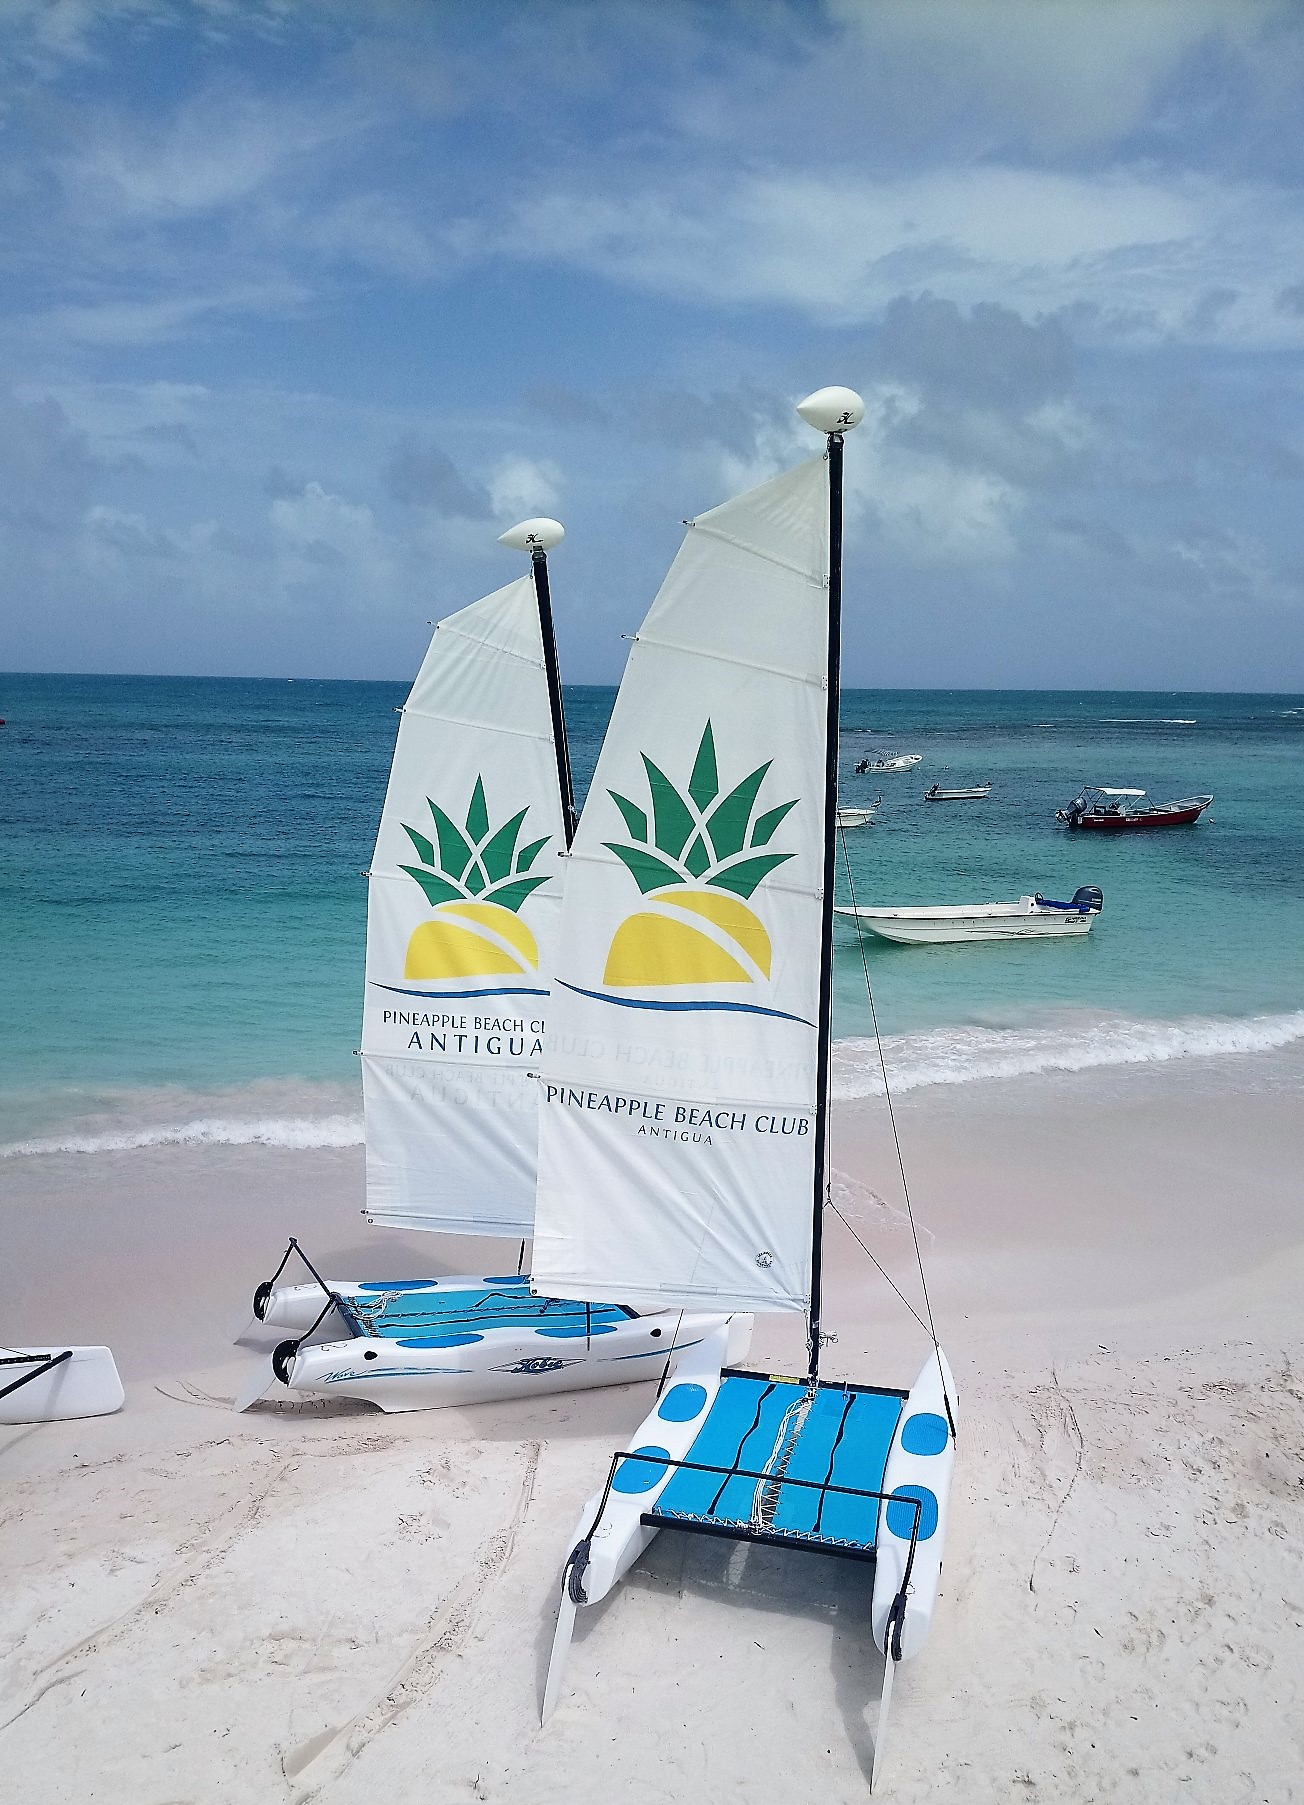 Hobie Cat Sailing at Long Bay in Pineapple Beach Club Antigua